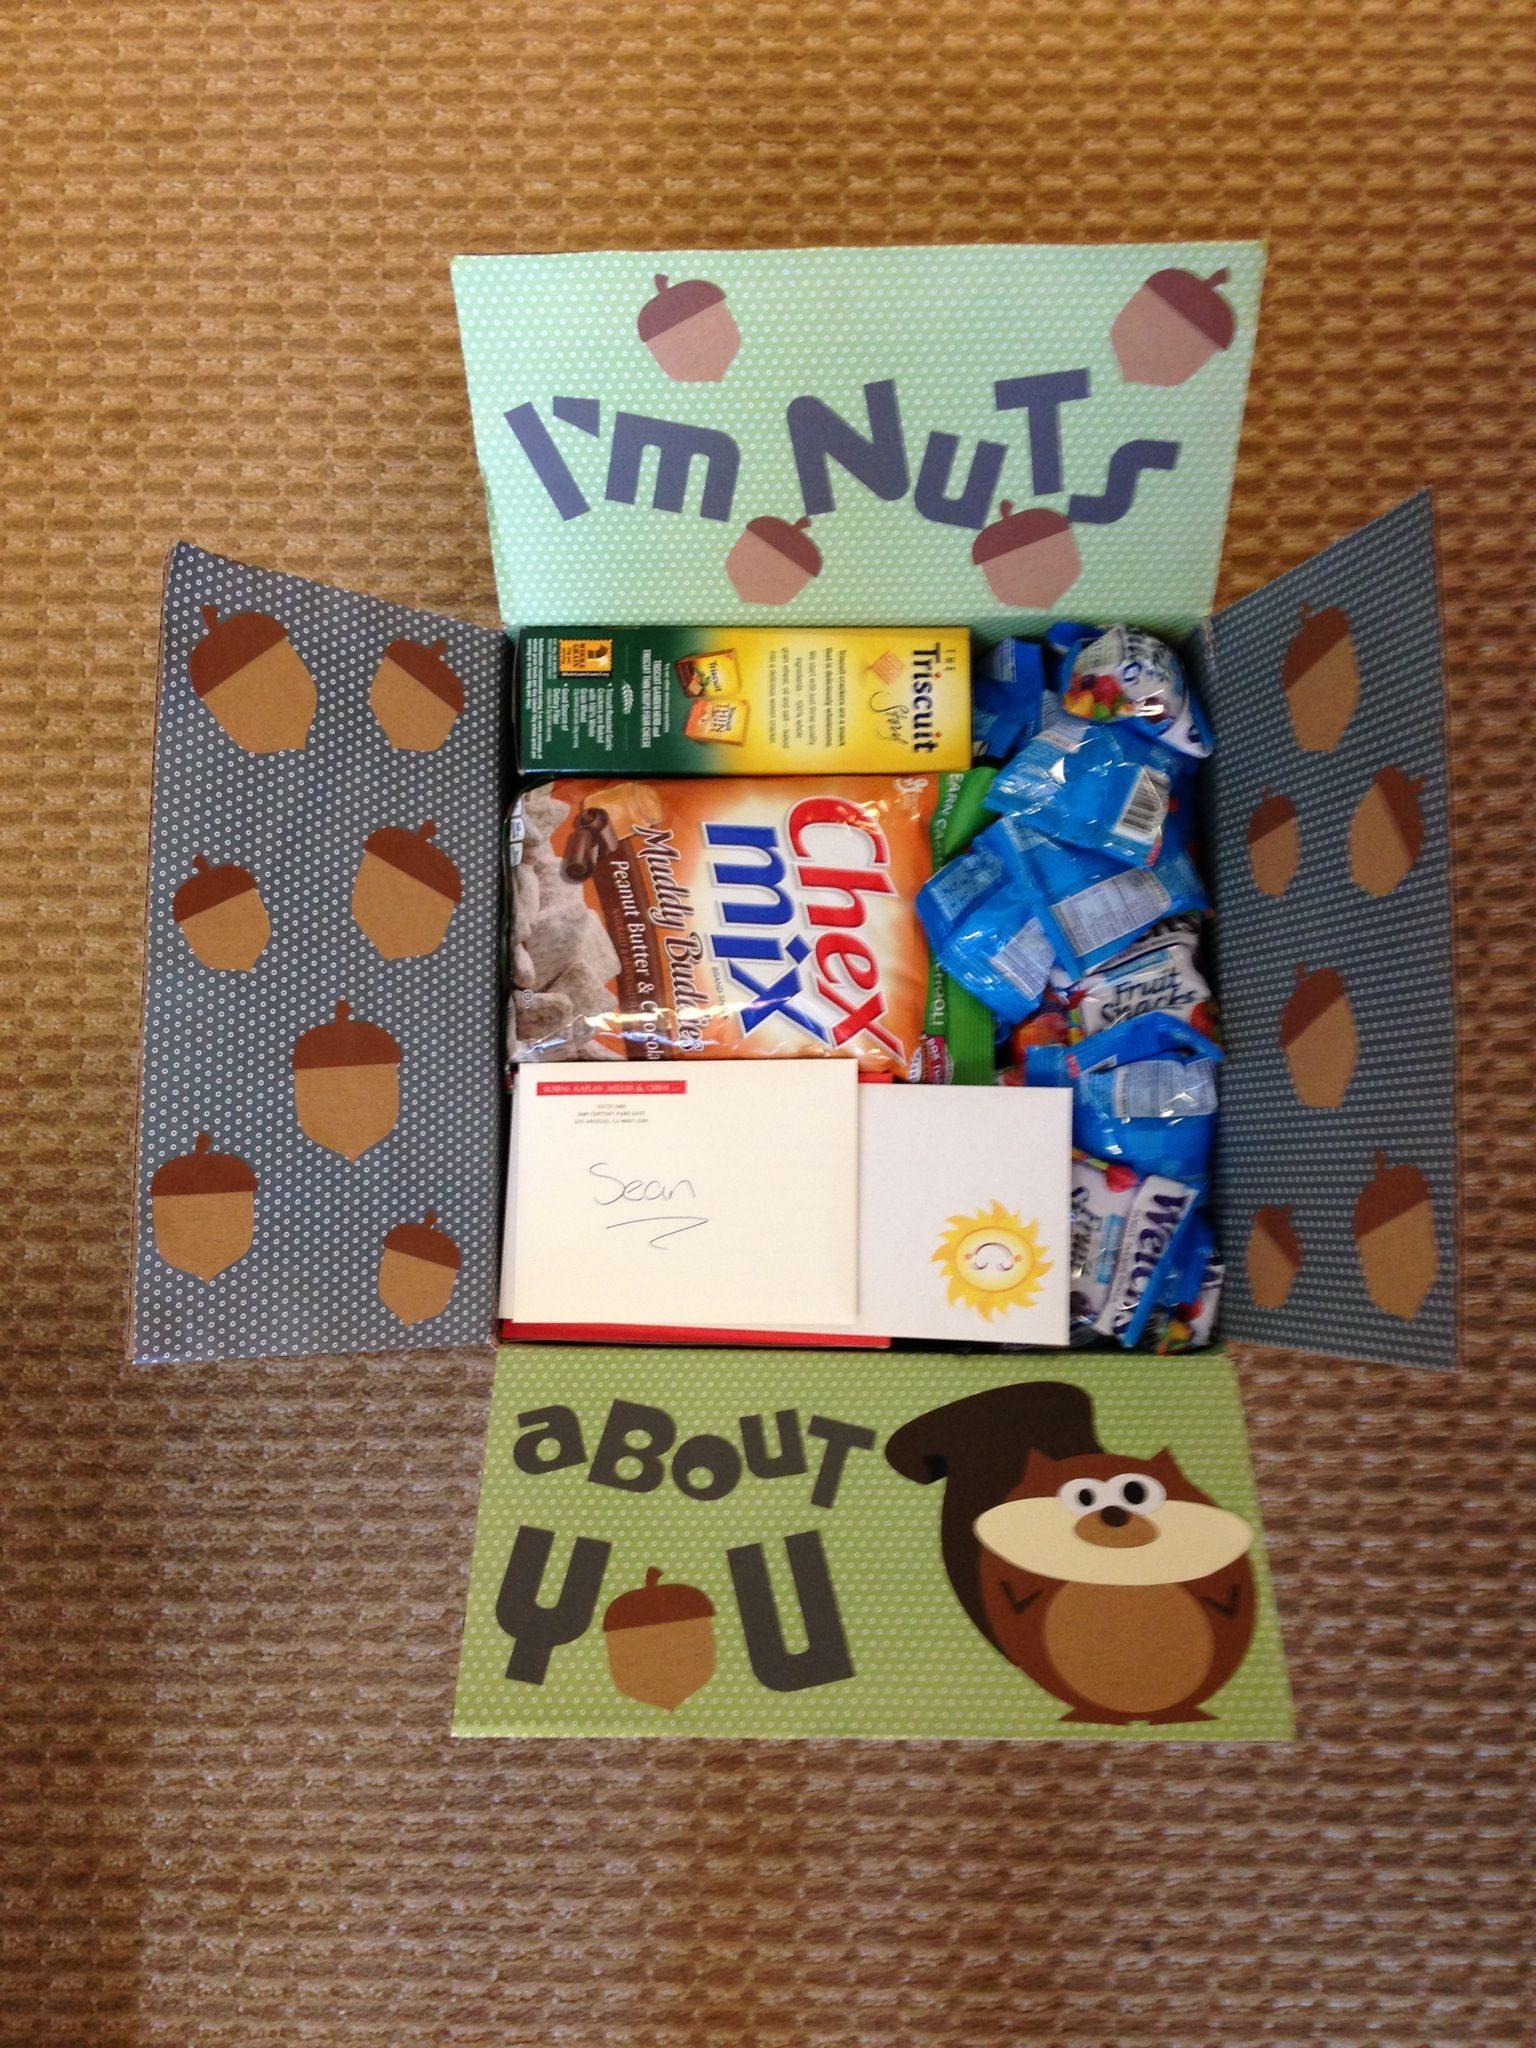 Study abroad care package